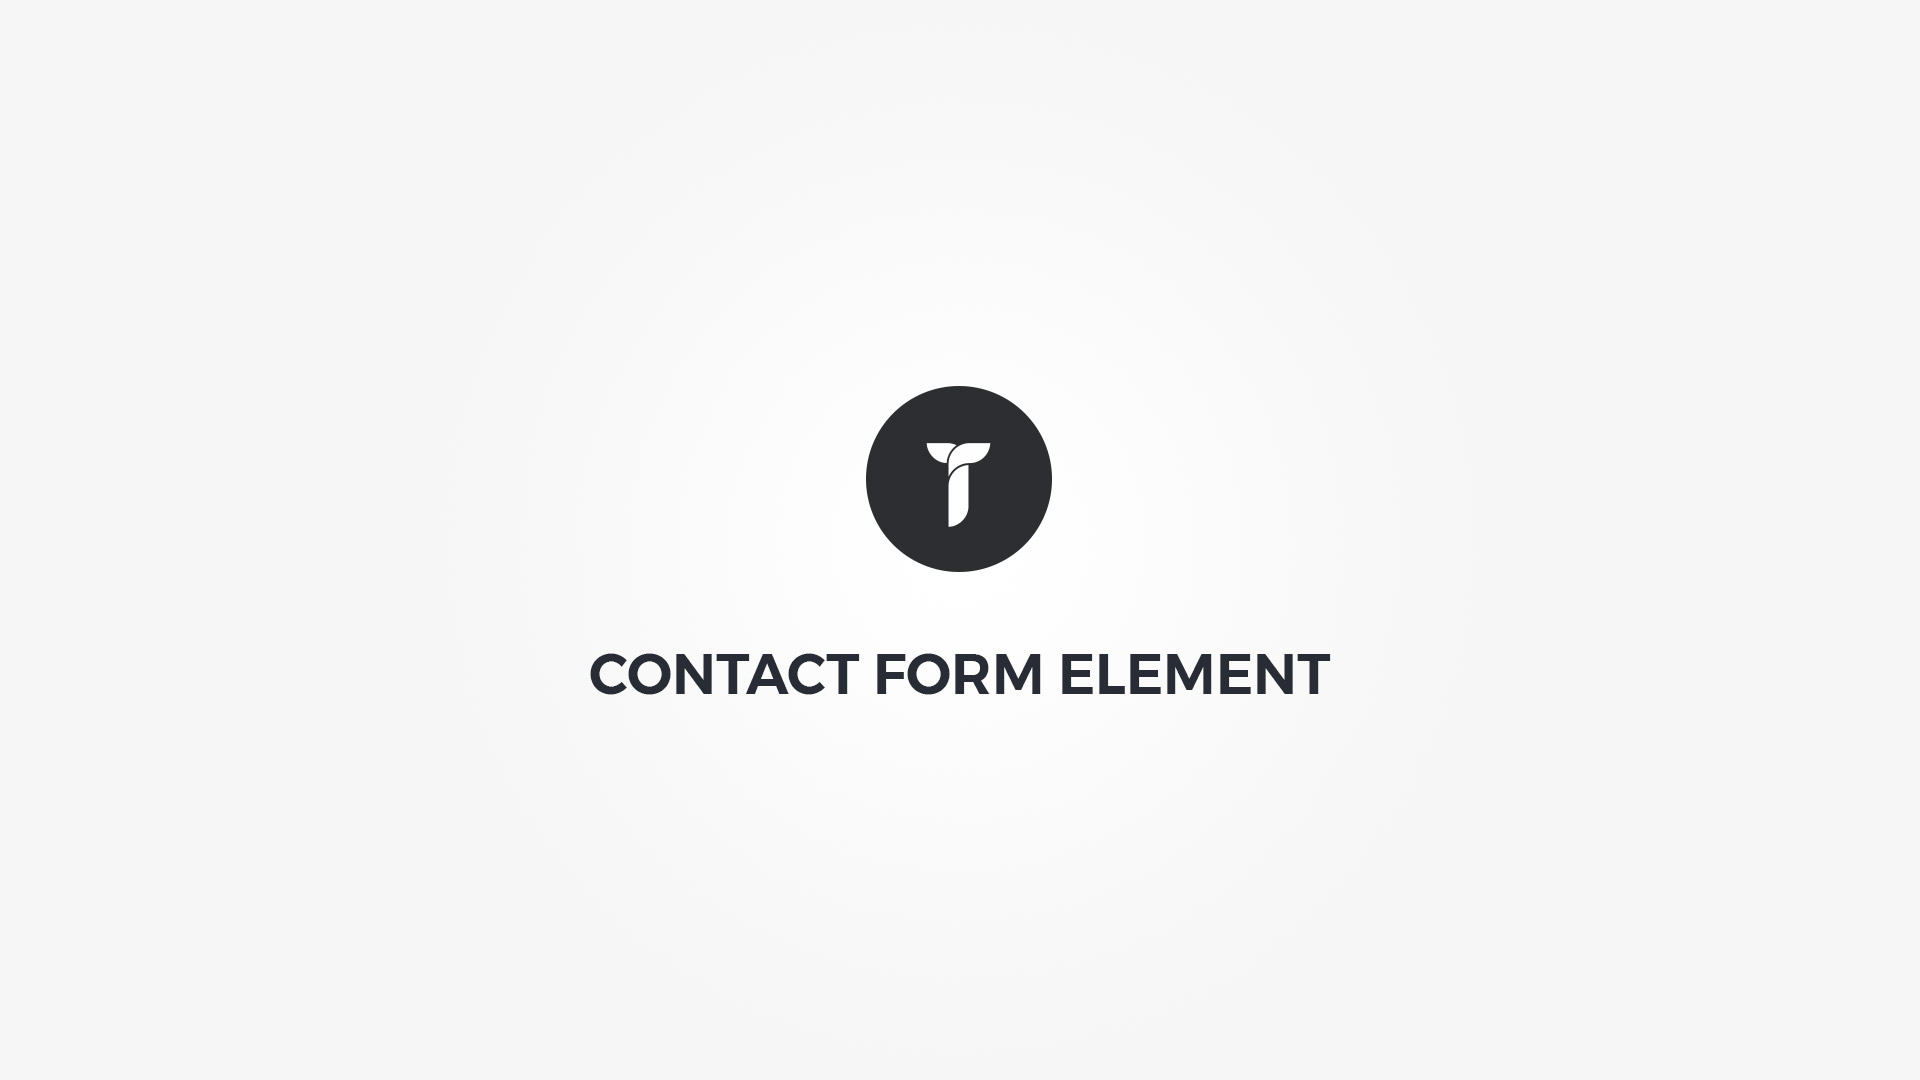 Creatus WordPress Theme Contact Form Element